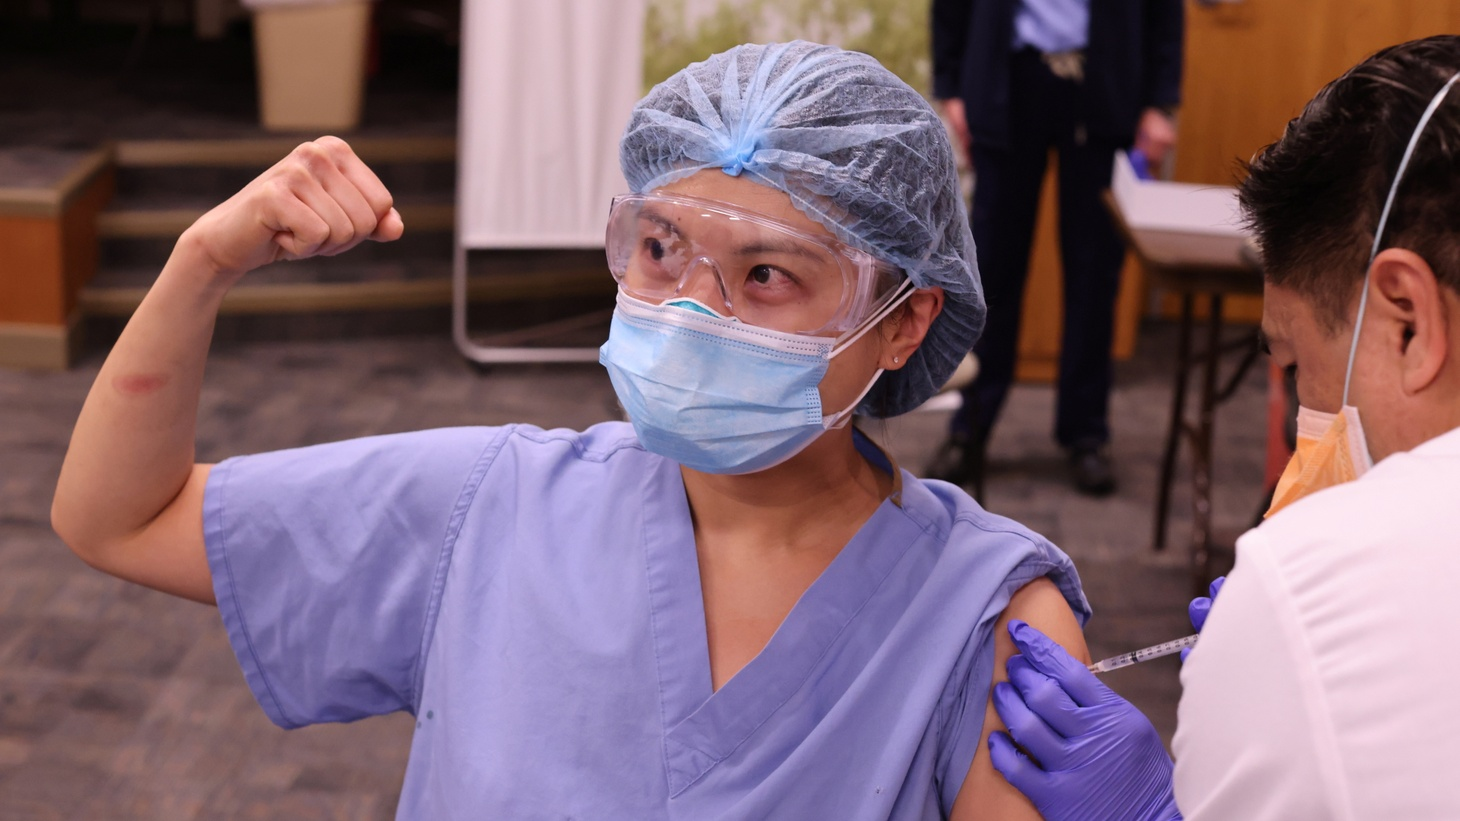 Physician Joyce Limurti, 40, flexes her bicep as she is given the coronavirus disease (COVID-19) vaccine at Dignity Health Glendale Memorial Hospital and Health Center in Glendale, California, U.S., December 17, 2020.